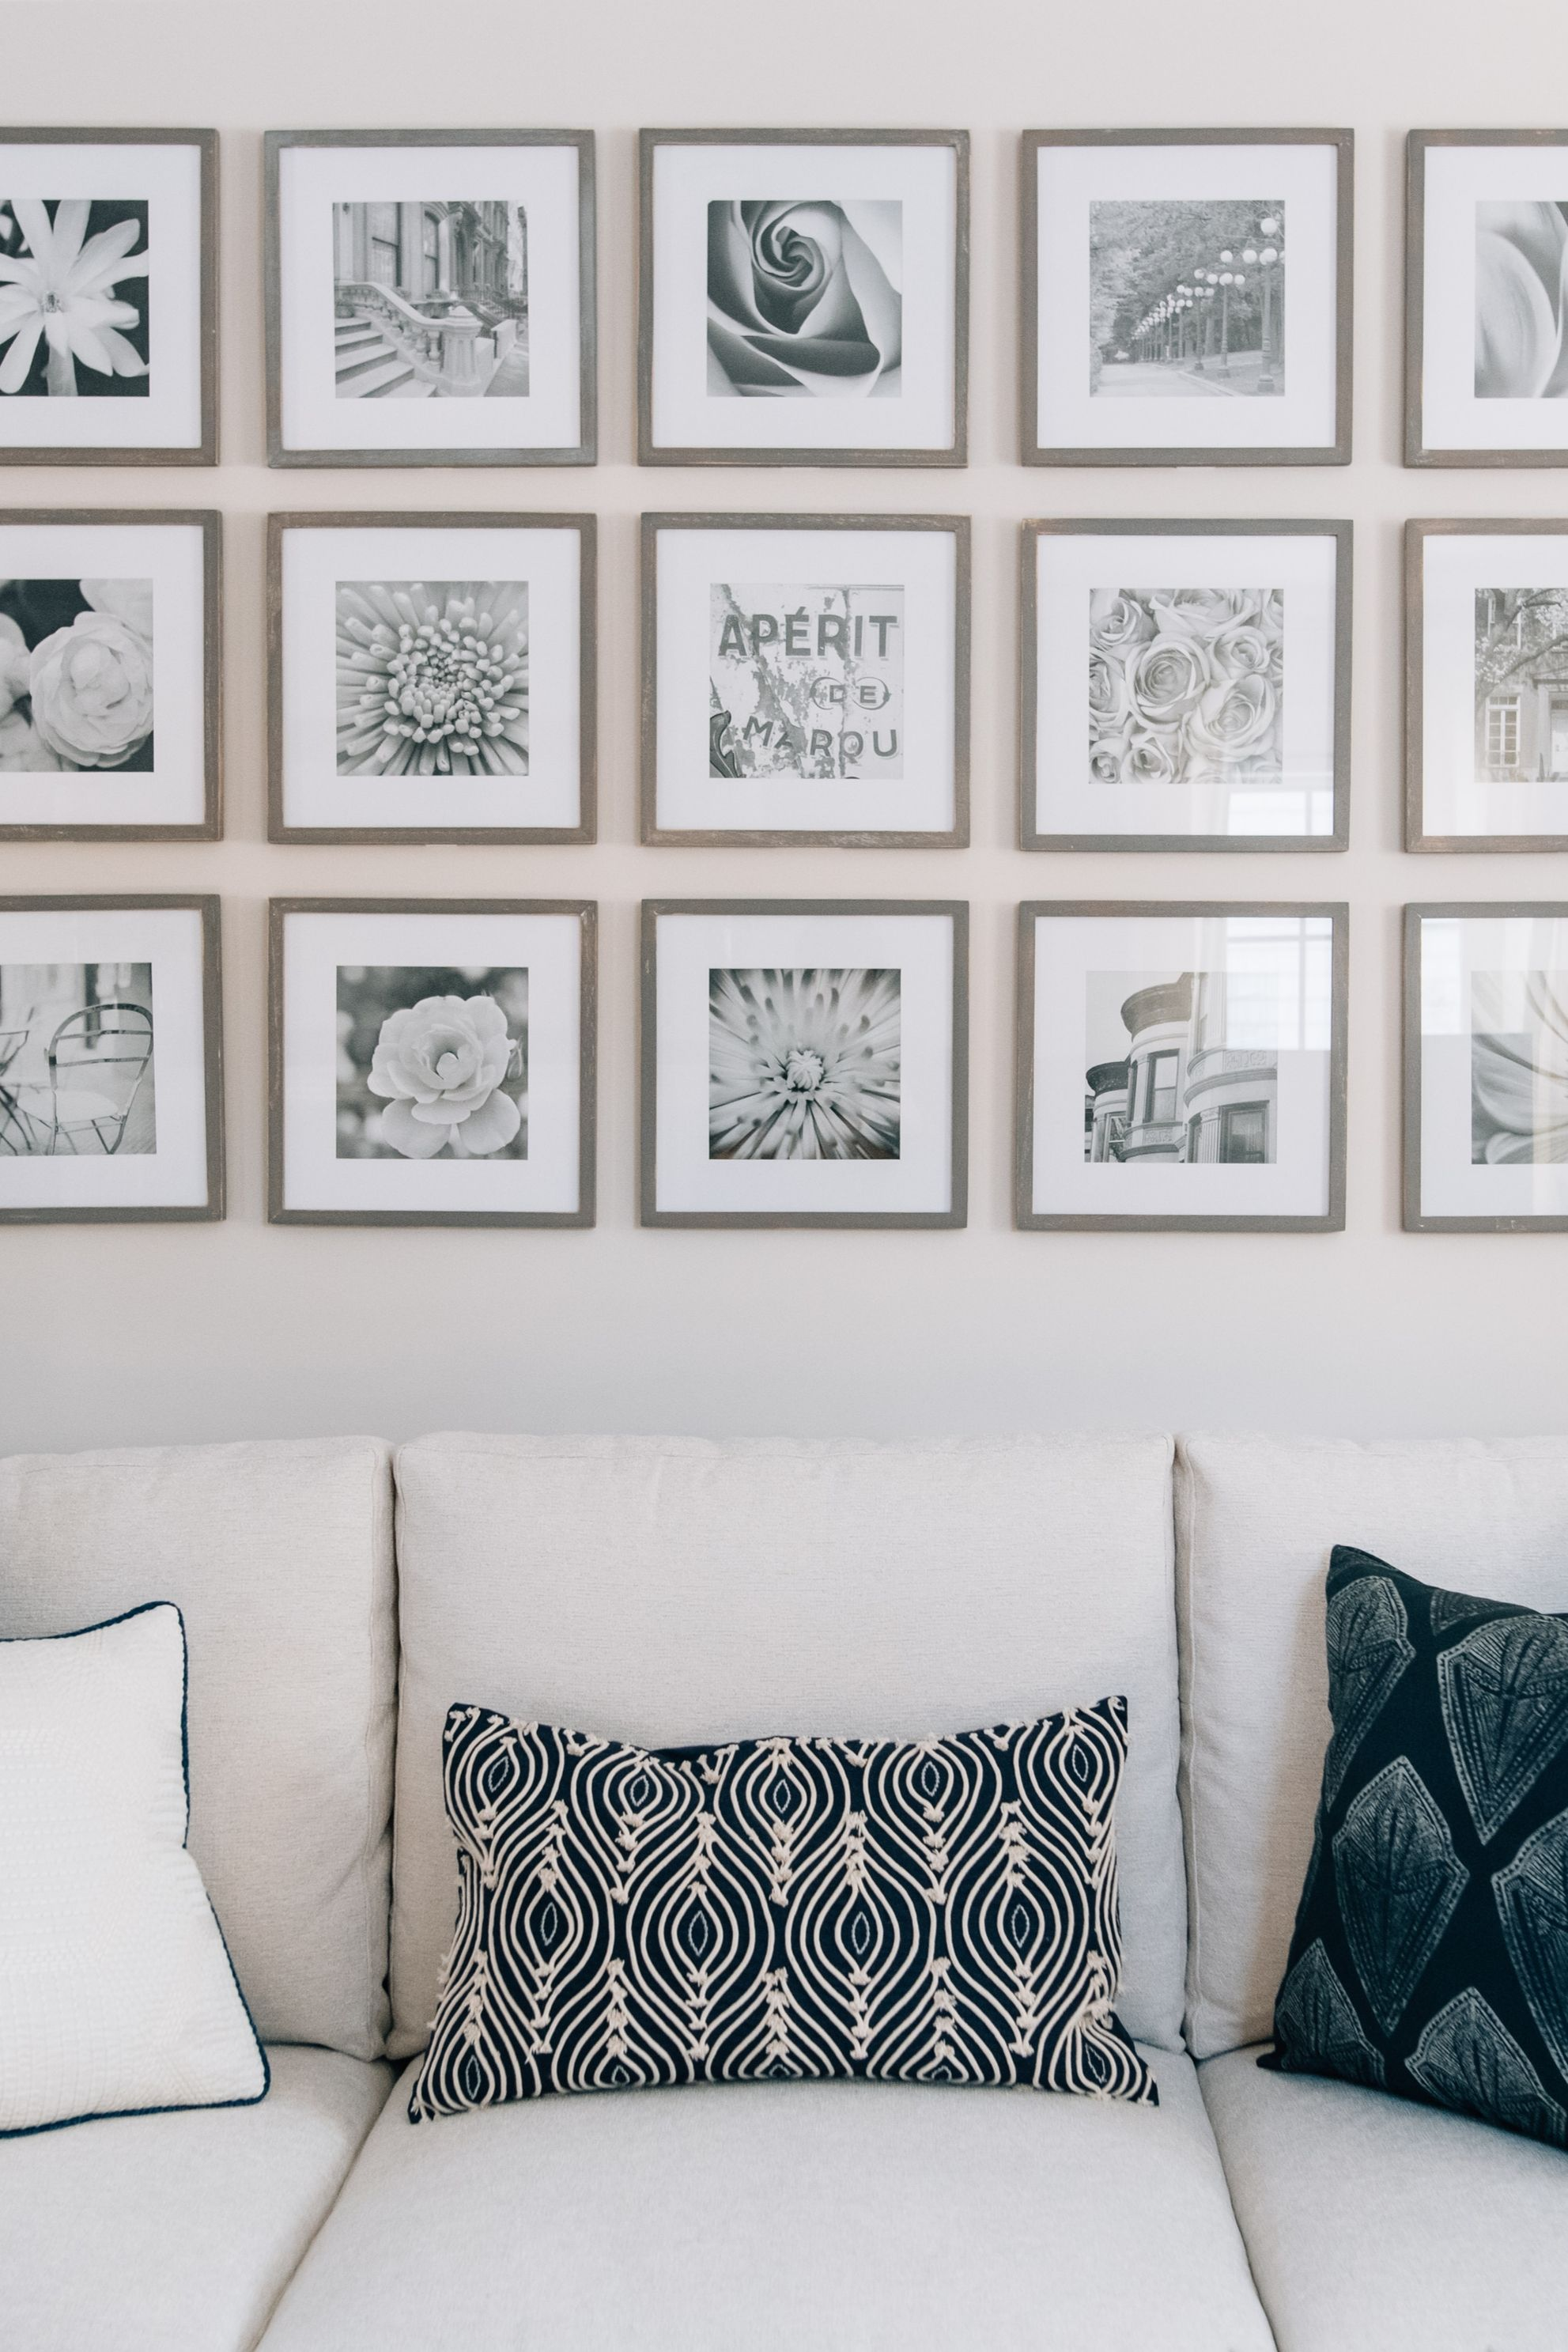 15 Frame Gallery Wall In Grid Black And White Stock Photos In